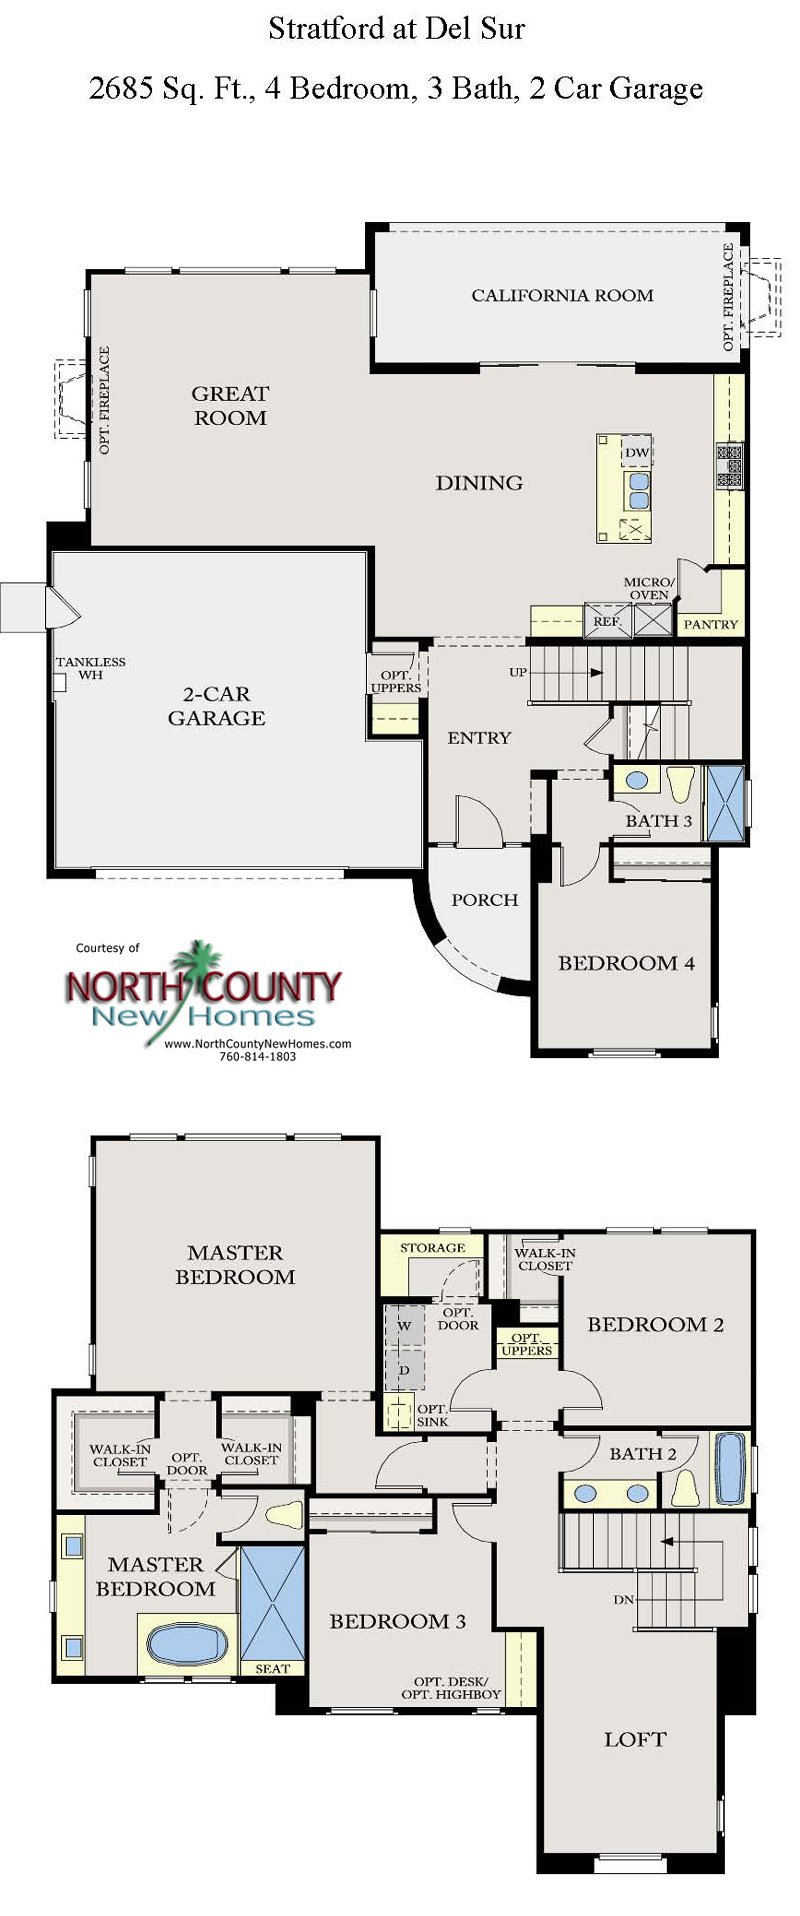 Stratford at del sur floor plans new homes in san diego for New home floorplans